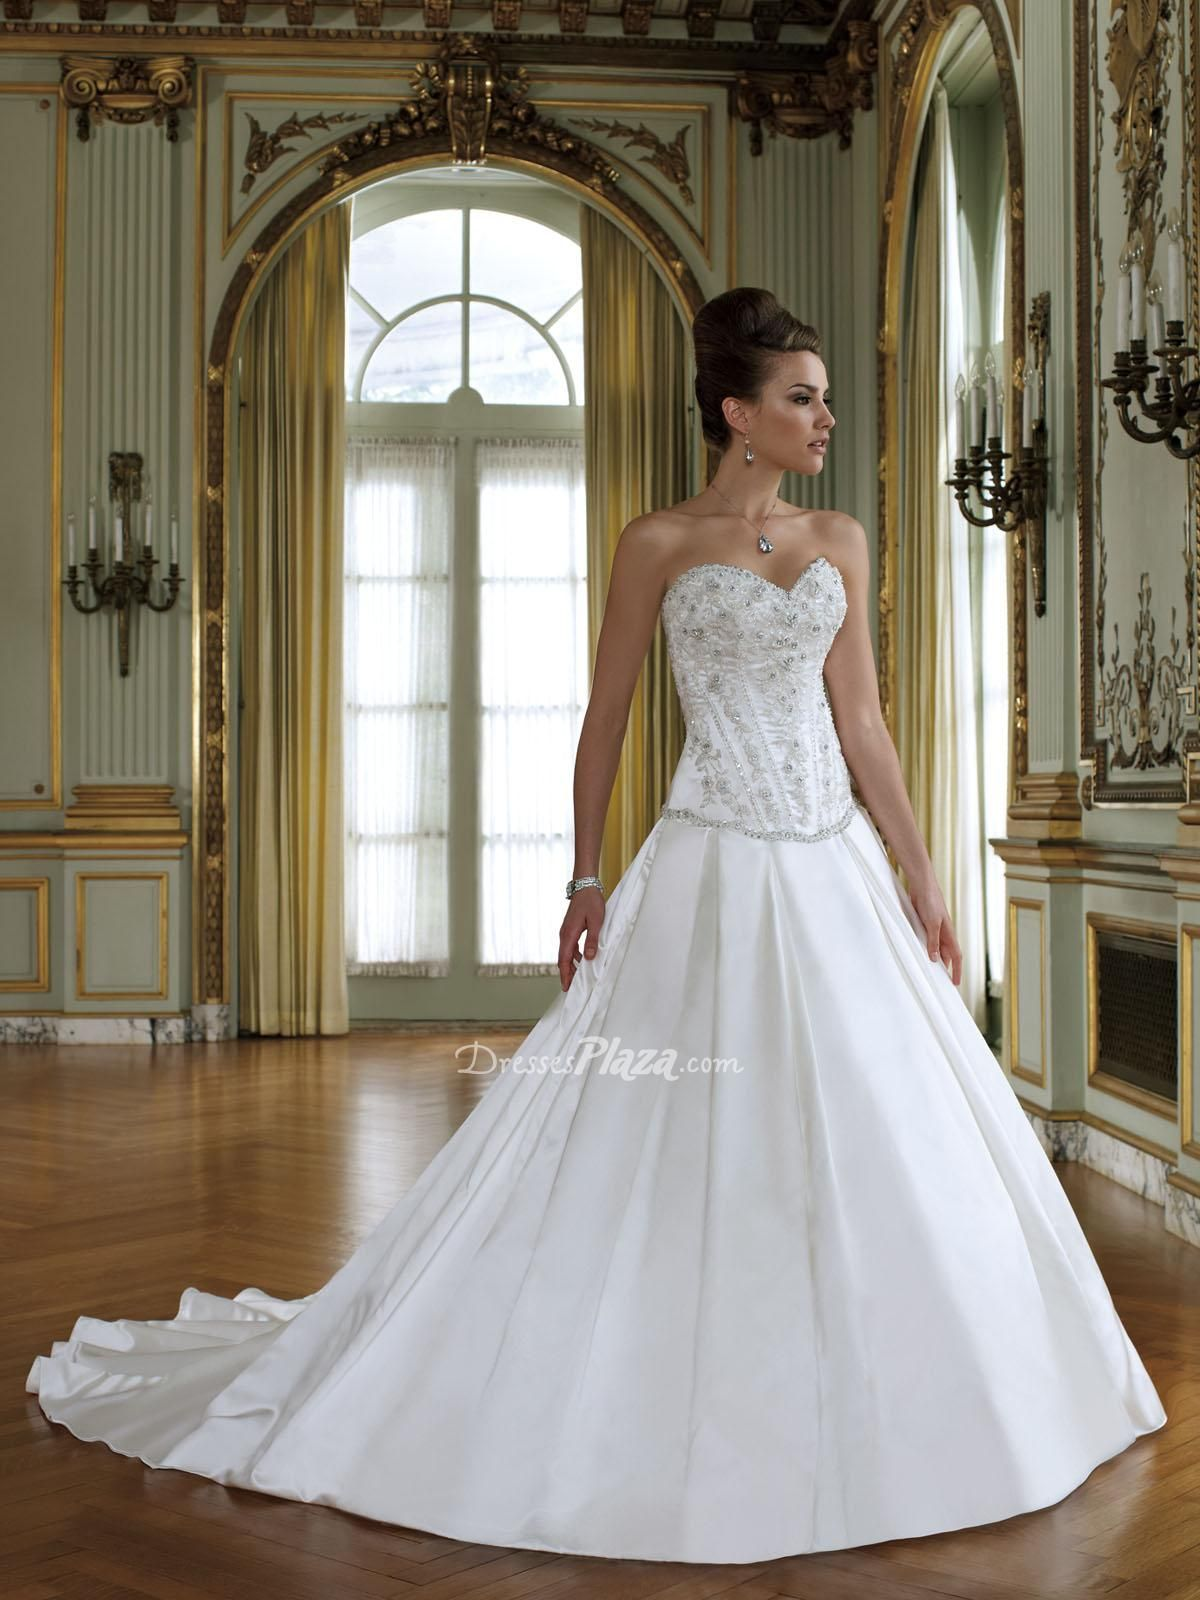 Satin Sweetheart Strapless Beaded Floral Bodice Dropped Waist Ball Gown Wedding Dress Wedding Dresses Ruched Wedding Dress A Line Bridal Gowns [ 1600 x 1200 Pixel ]